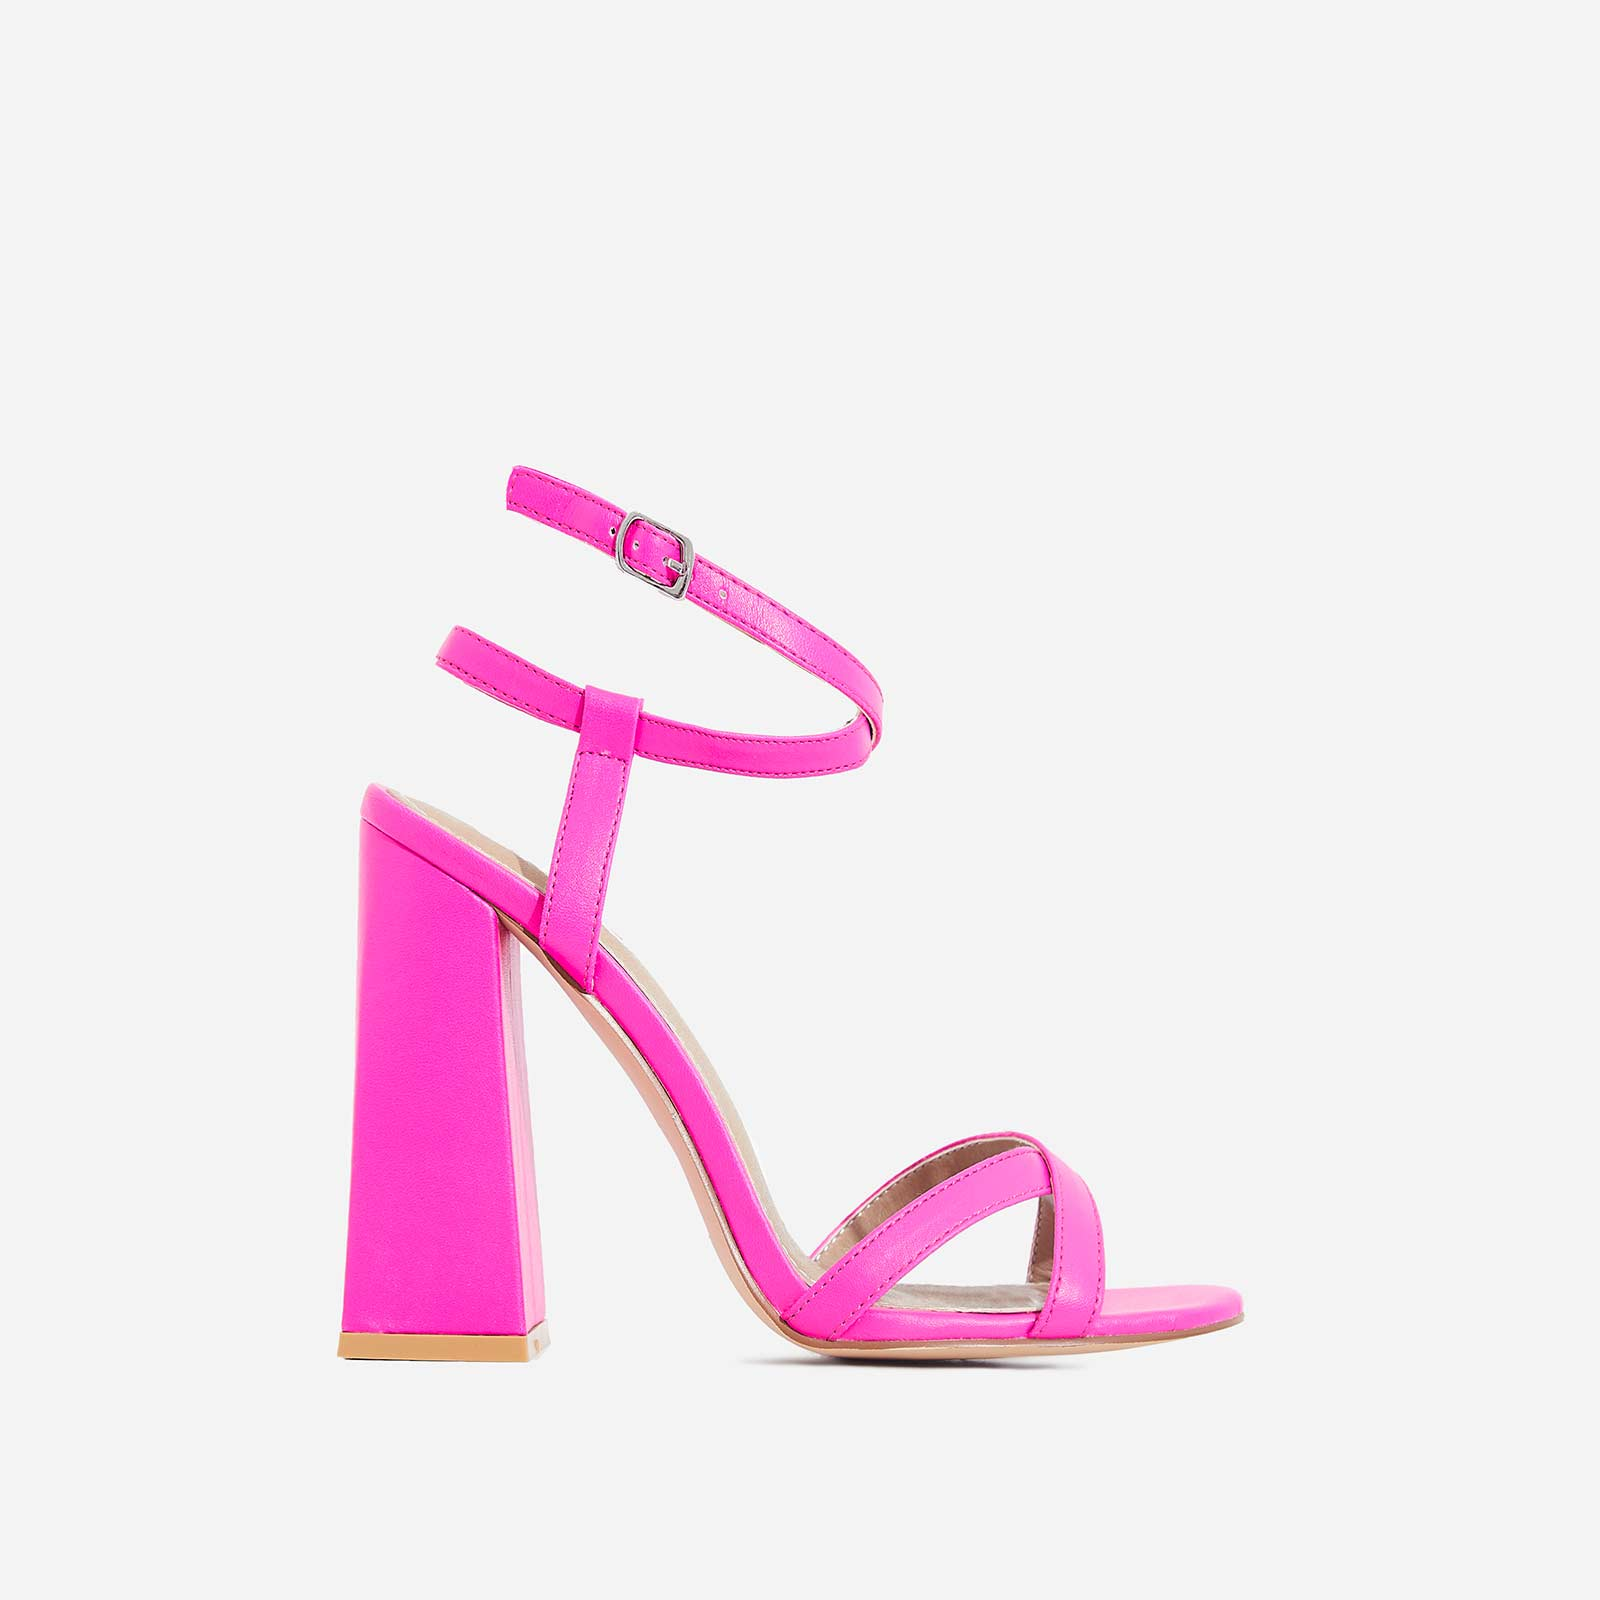 Iris Flared Block Heel In Neon Pink Faux Leather